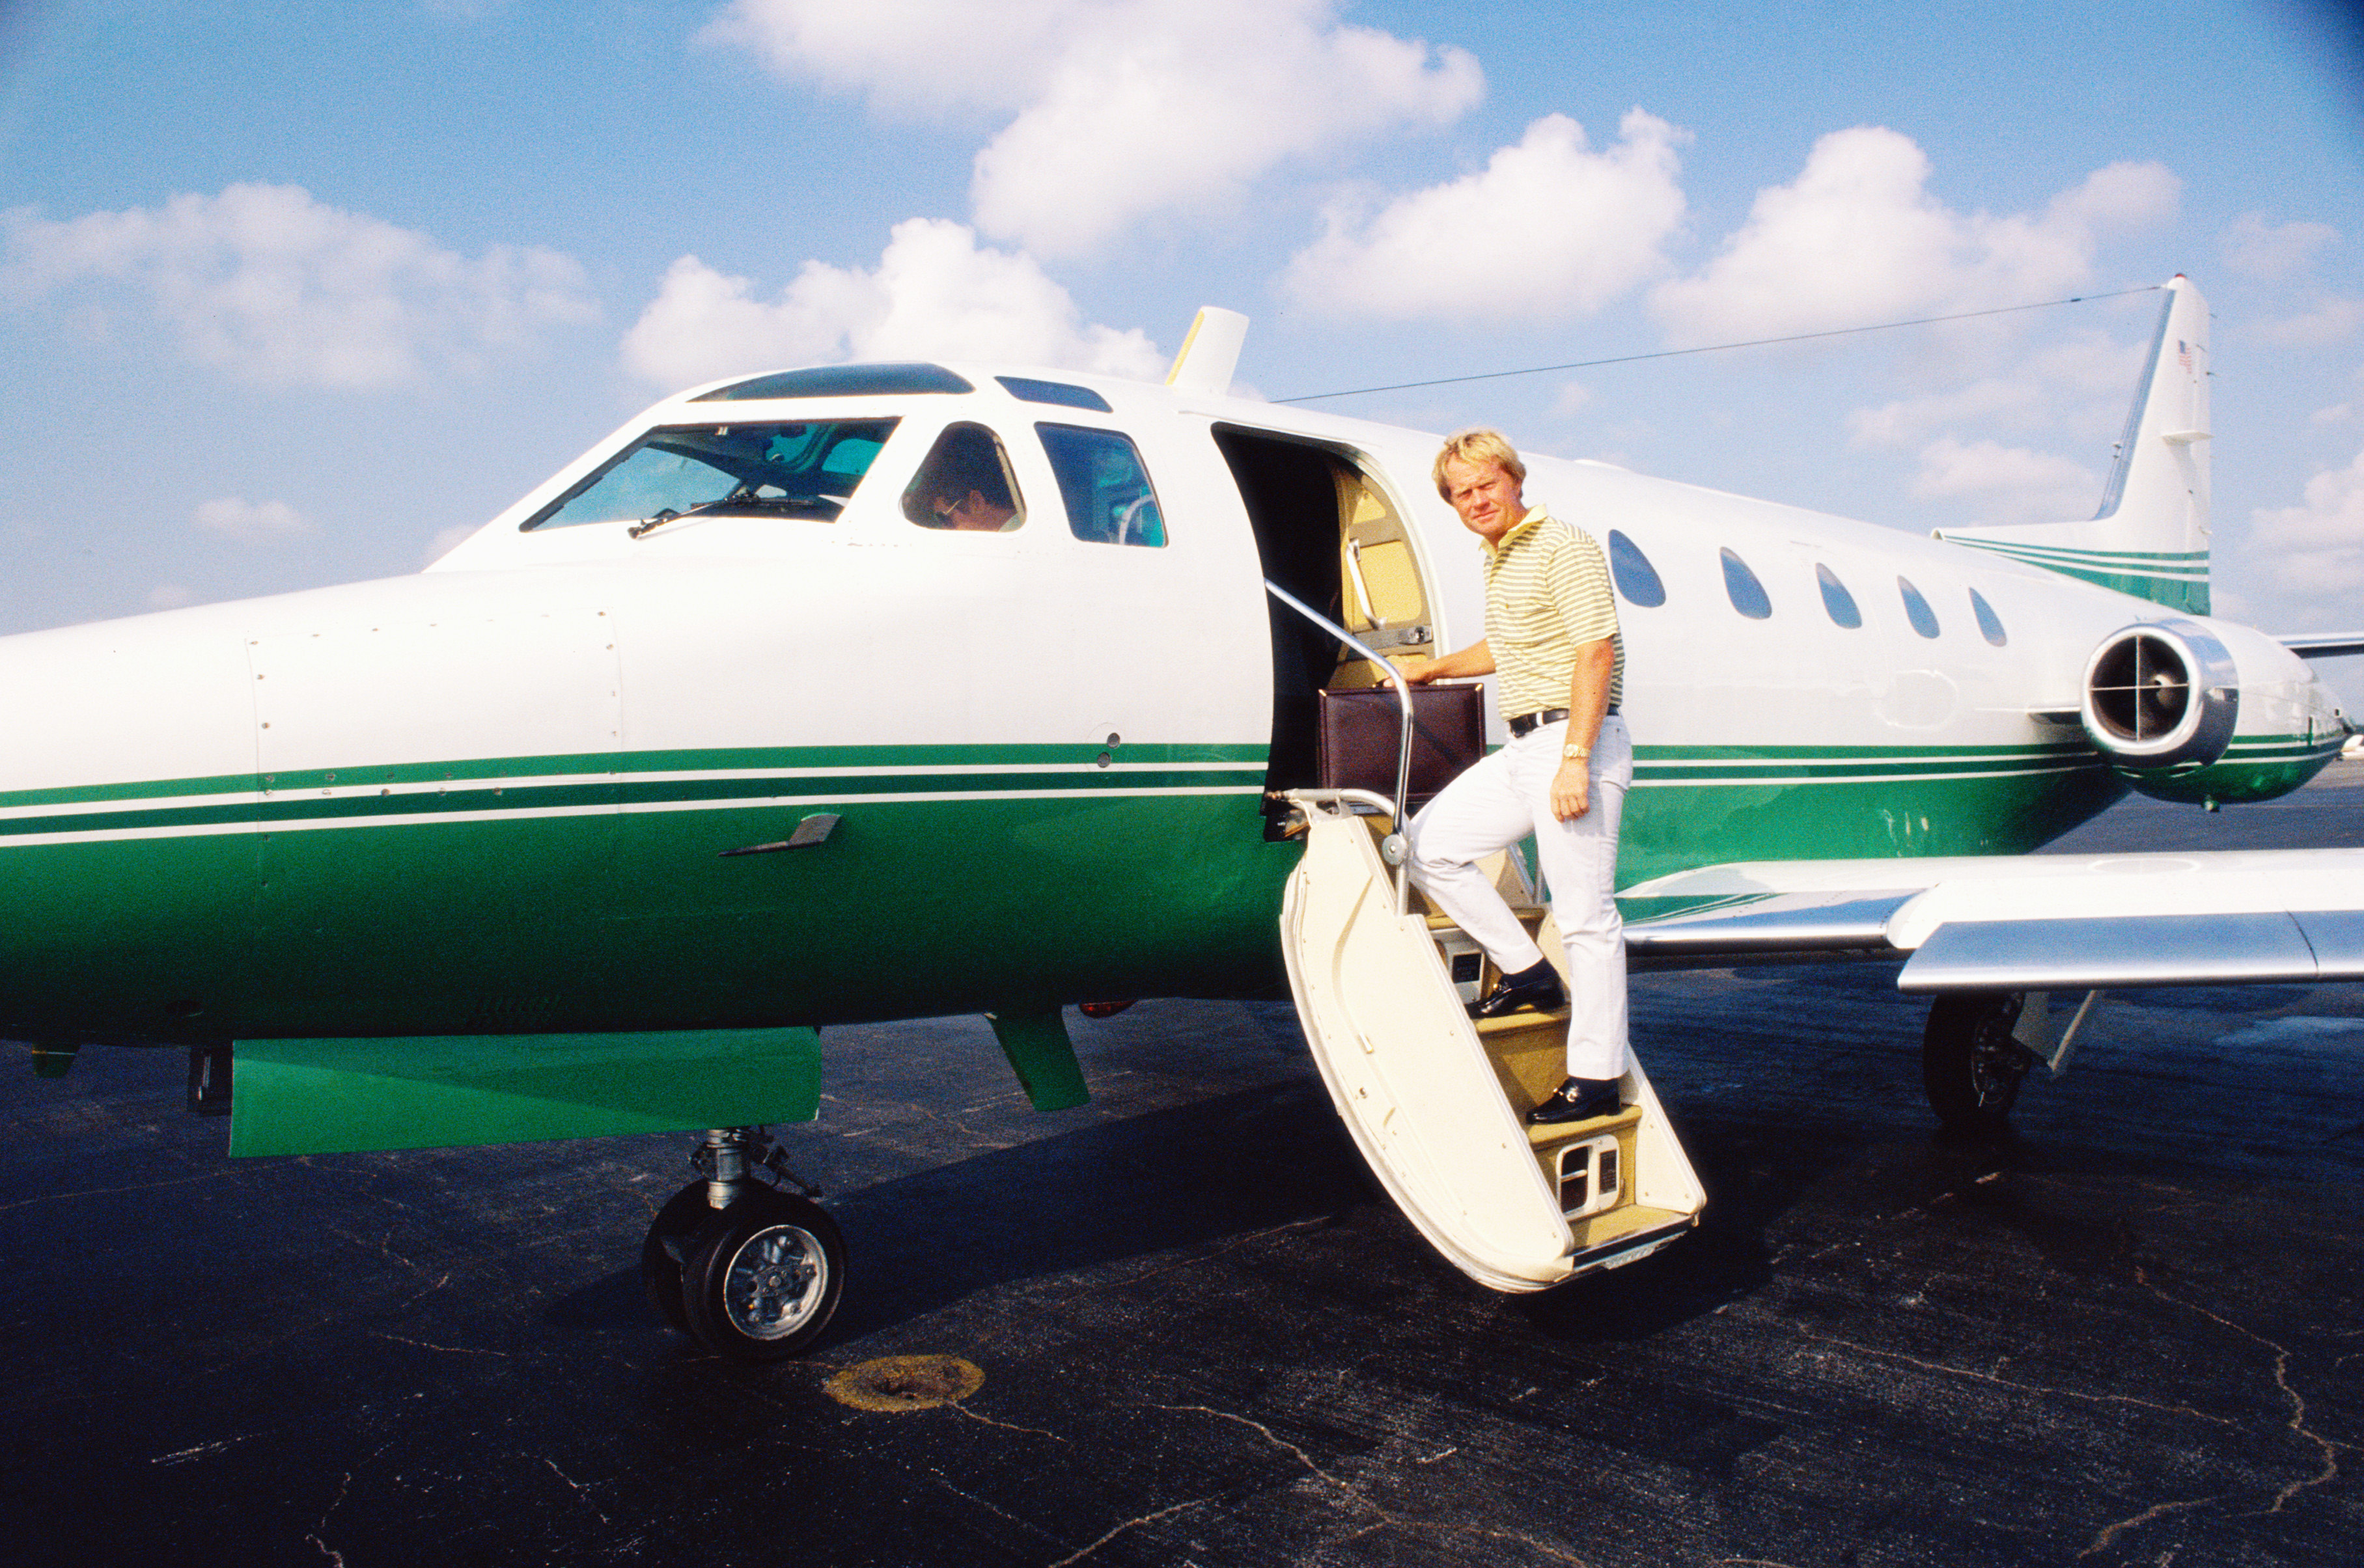 Jack Nicklaus of the USA boarding his plane (undated).